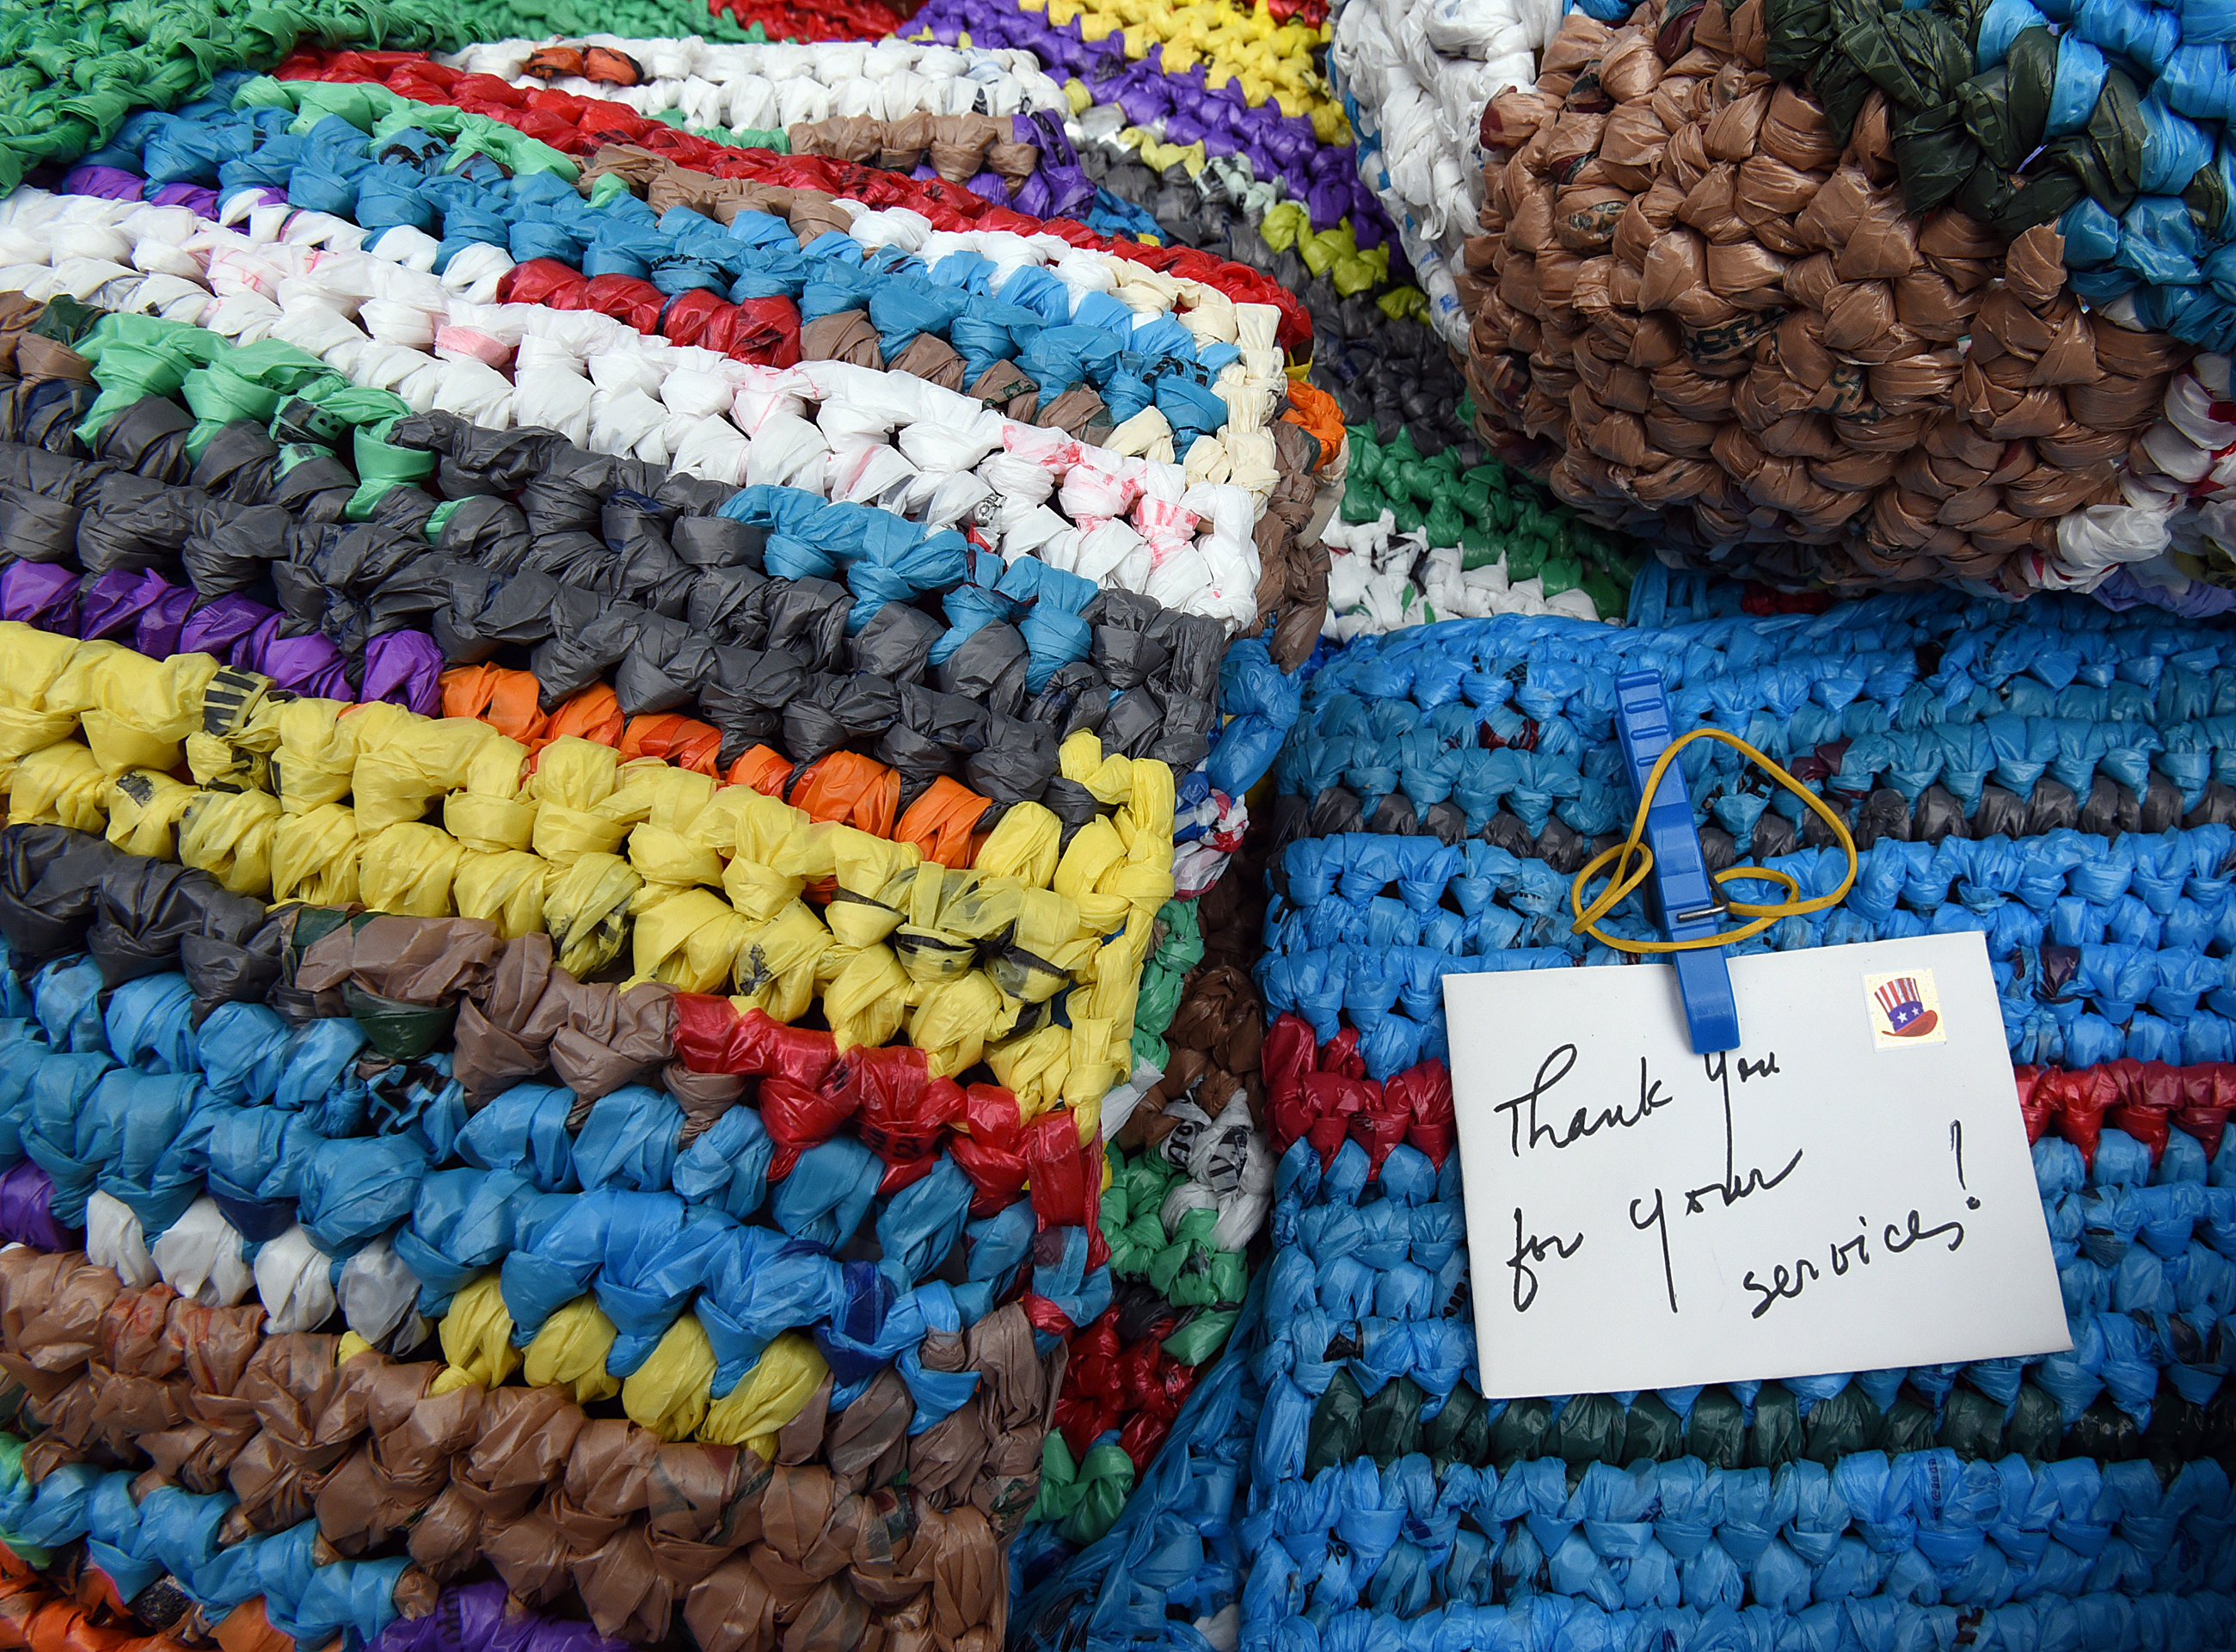 Crocheting Mats From Plastic Bags : 20150714radBagsNorth04-3 The mats are sturdy, almost indestructible ...